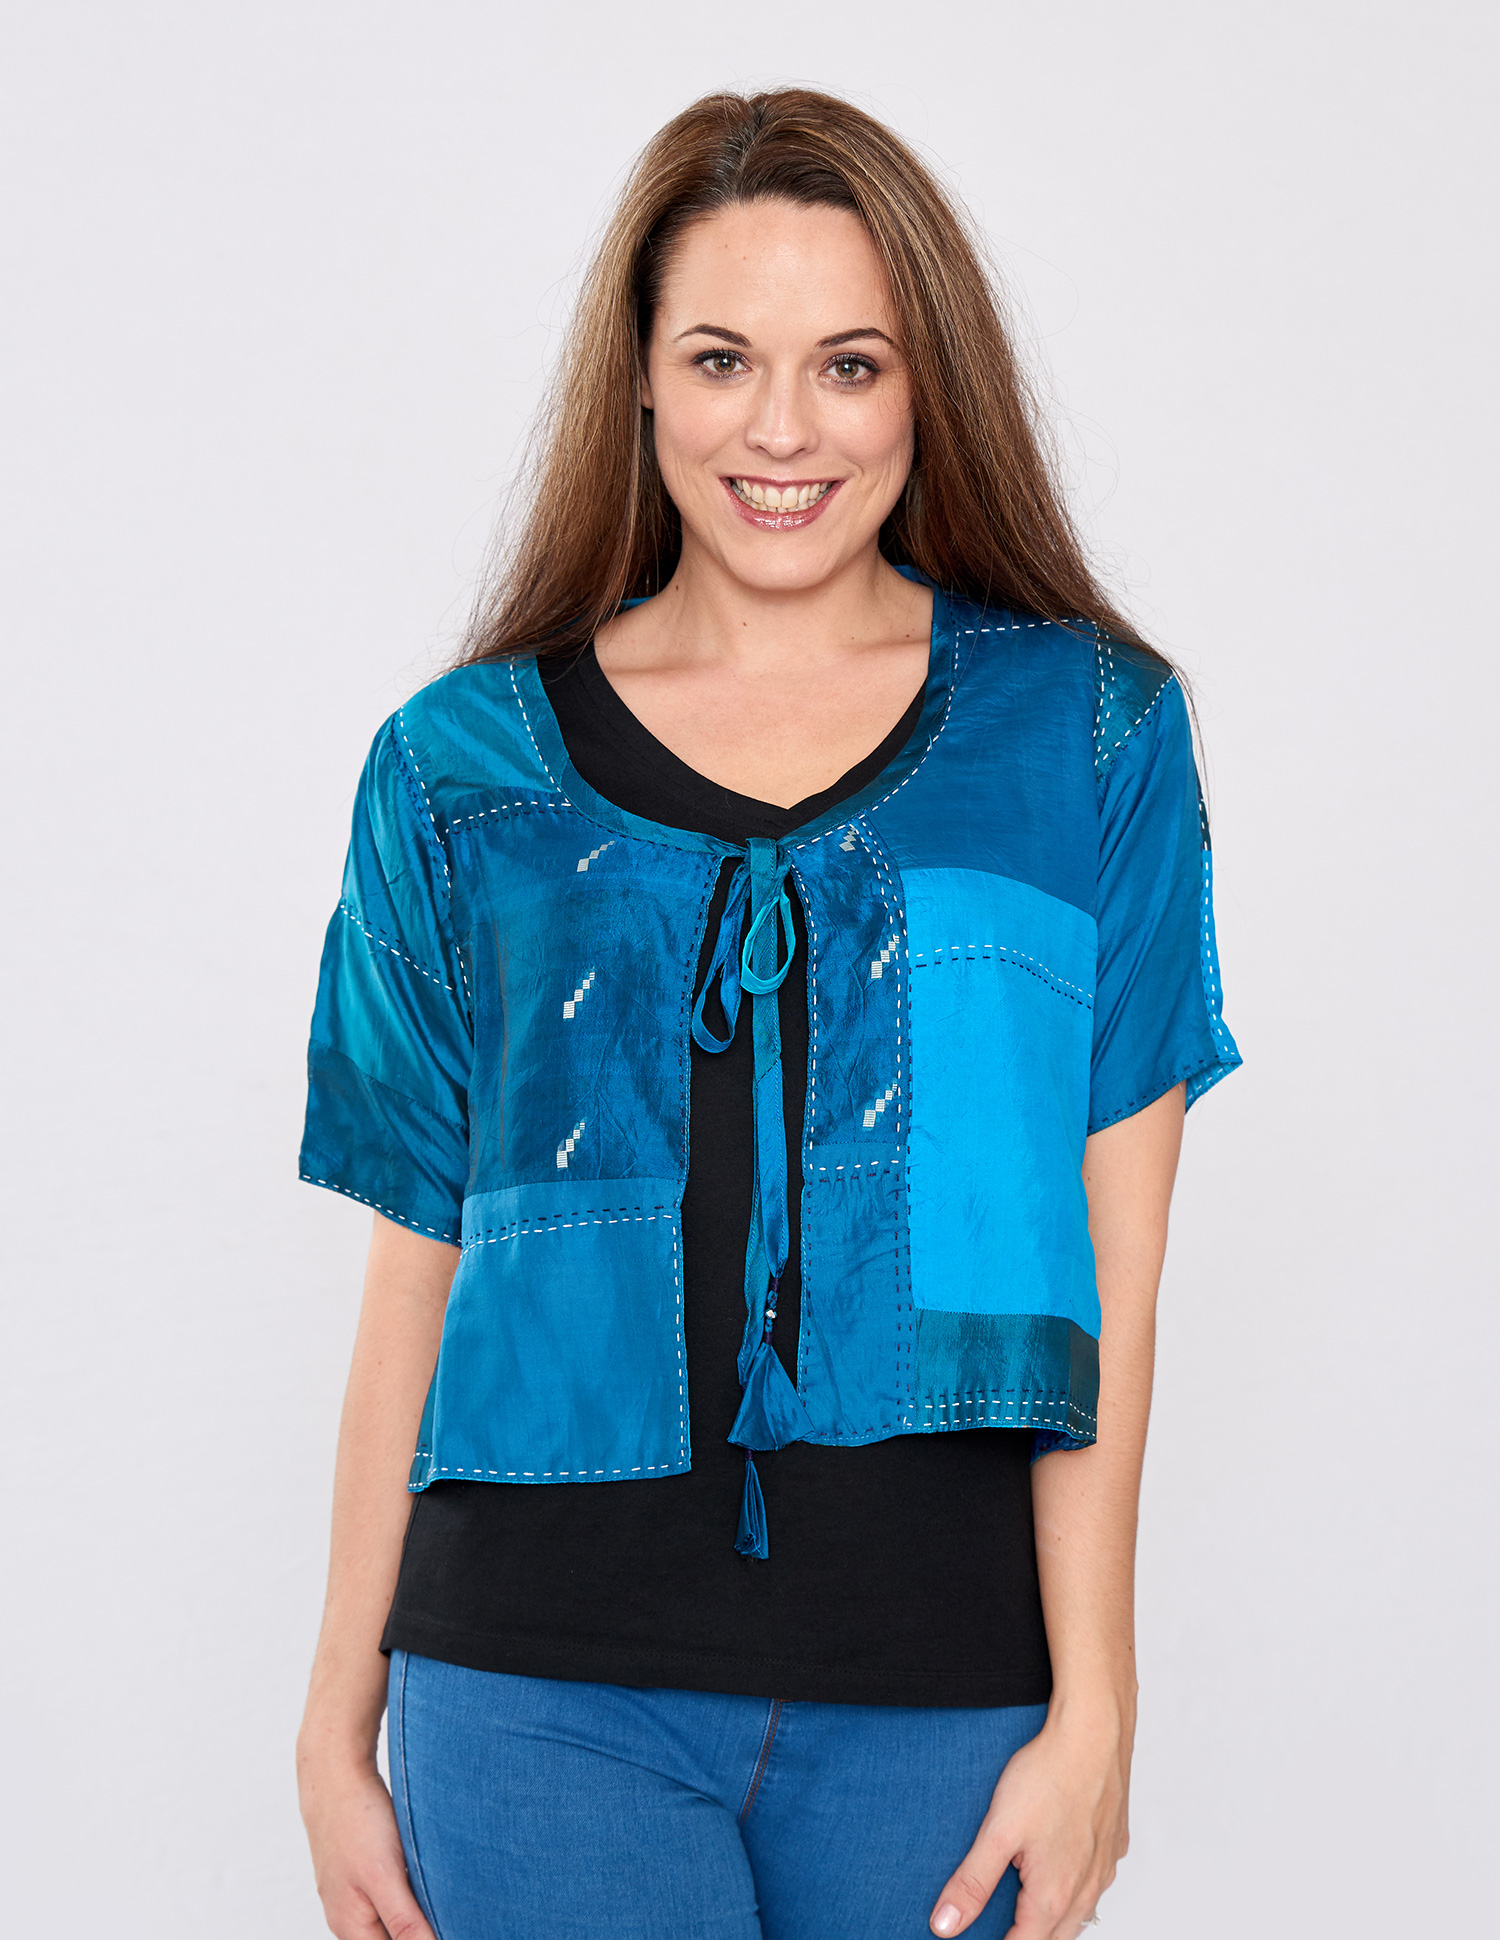 Teal Pure Silk Hand Stitched Ladies Cover-up